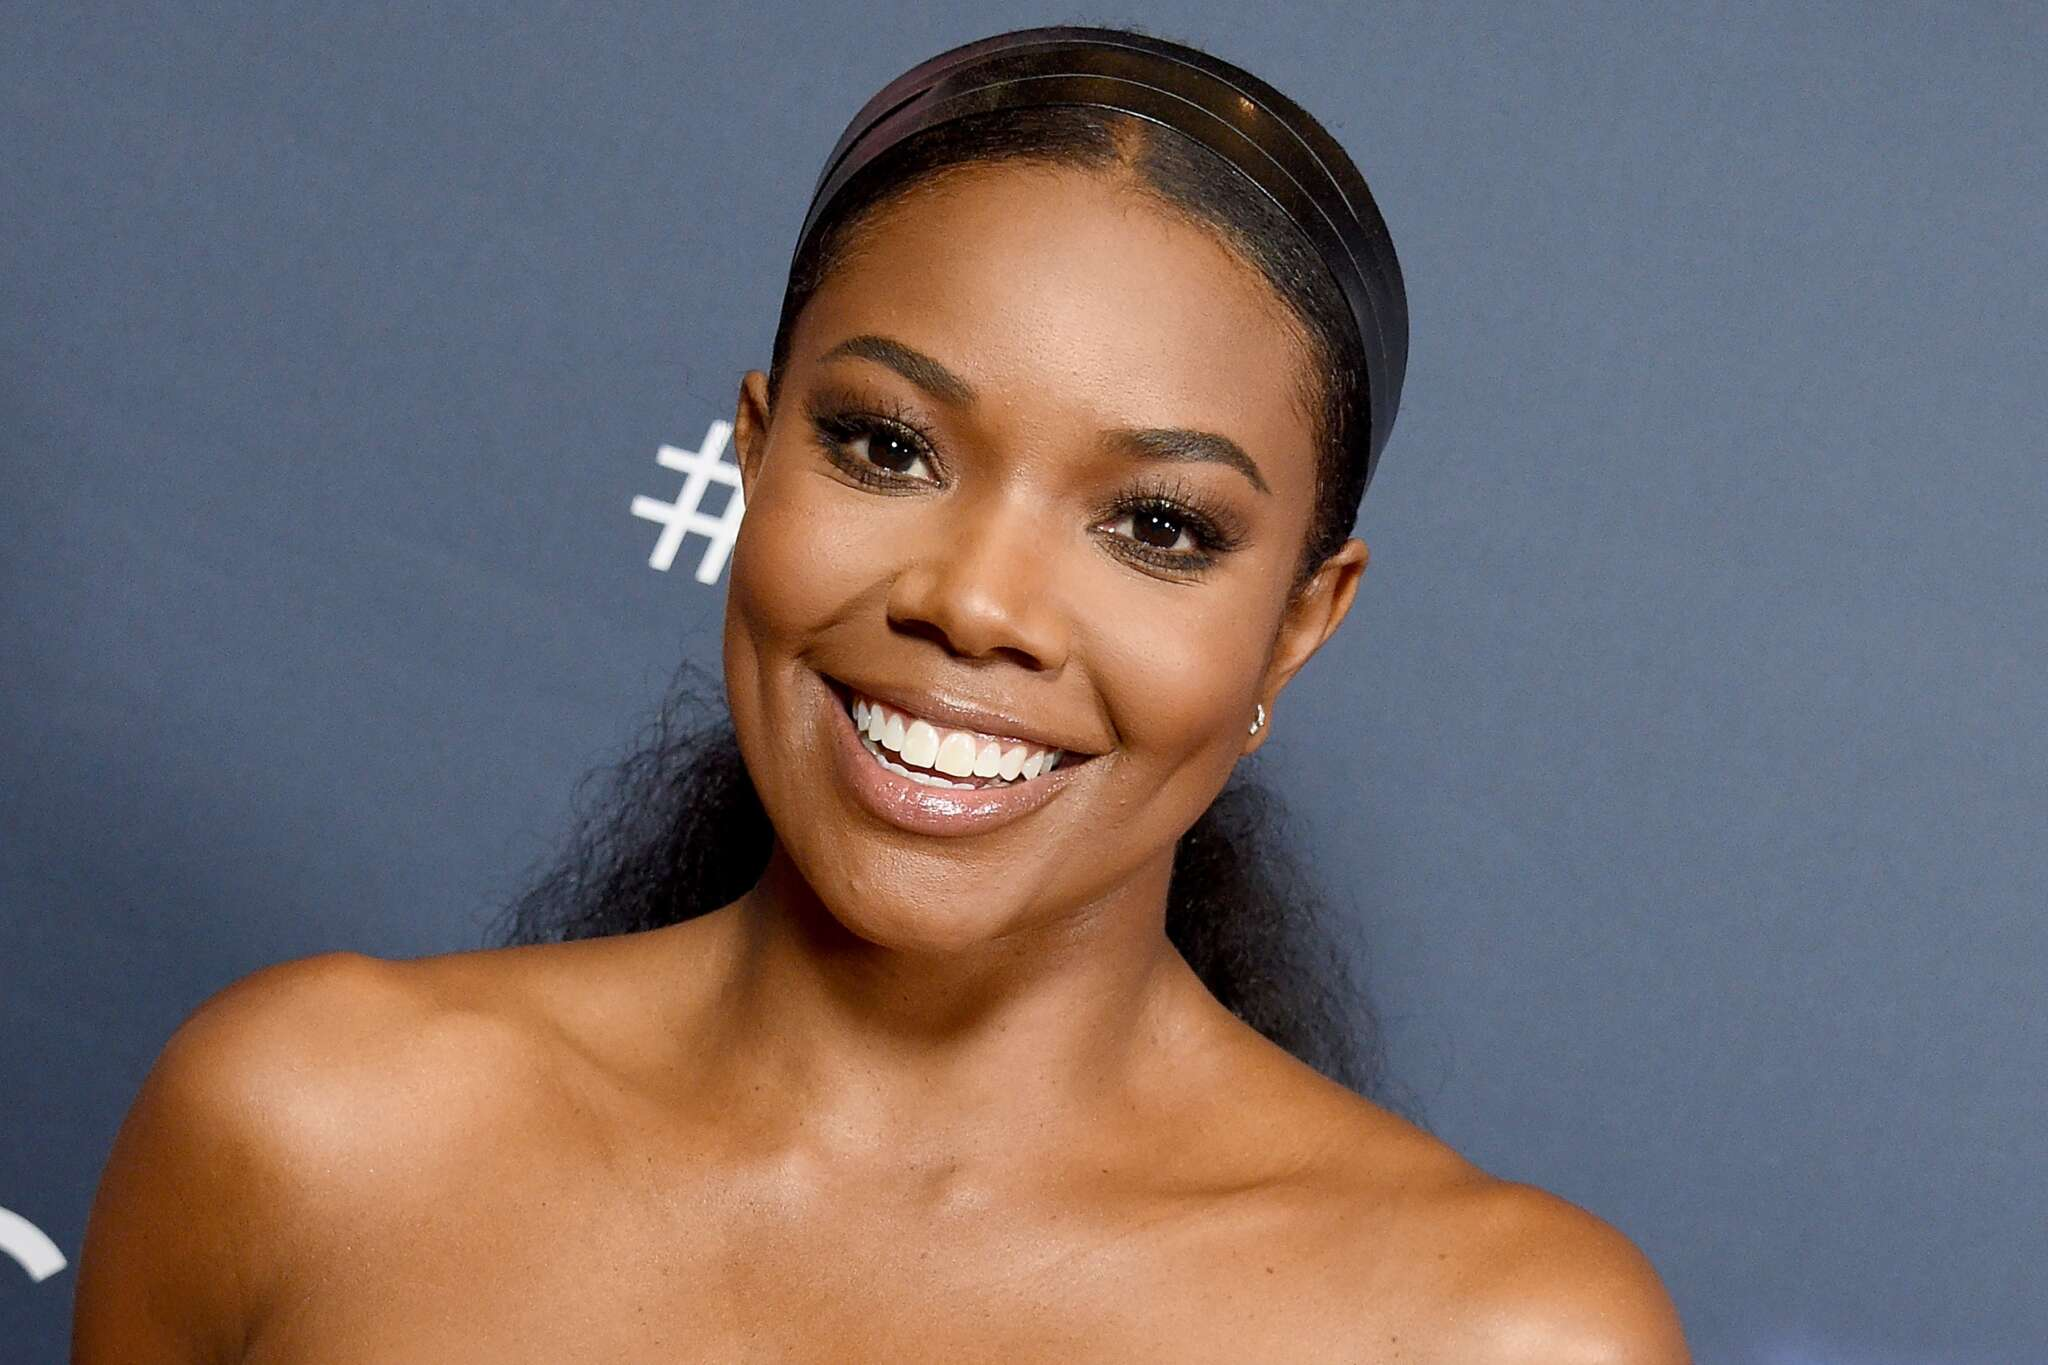 gabrielle-union-drops-her-clothes-and-flexes-for-the-gram